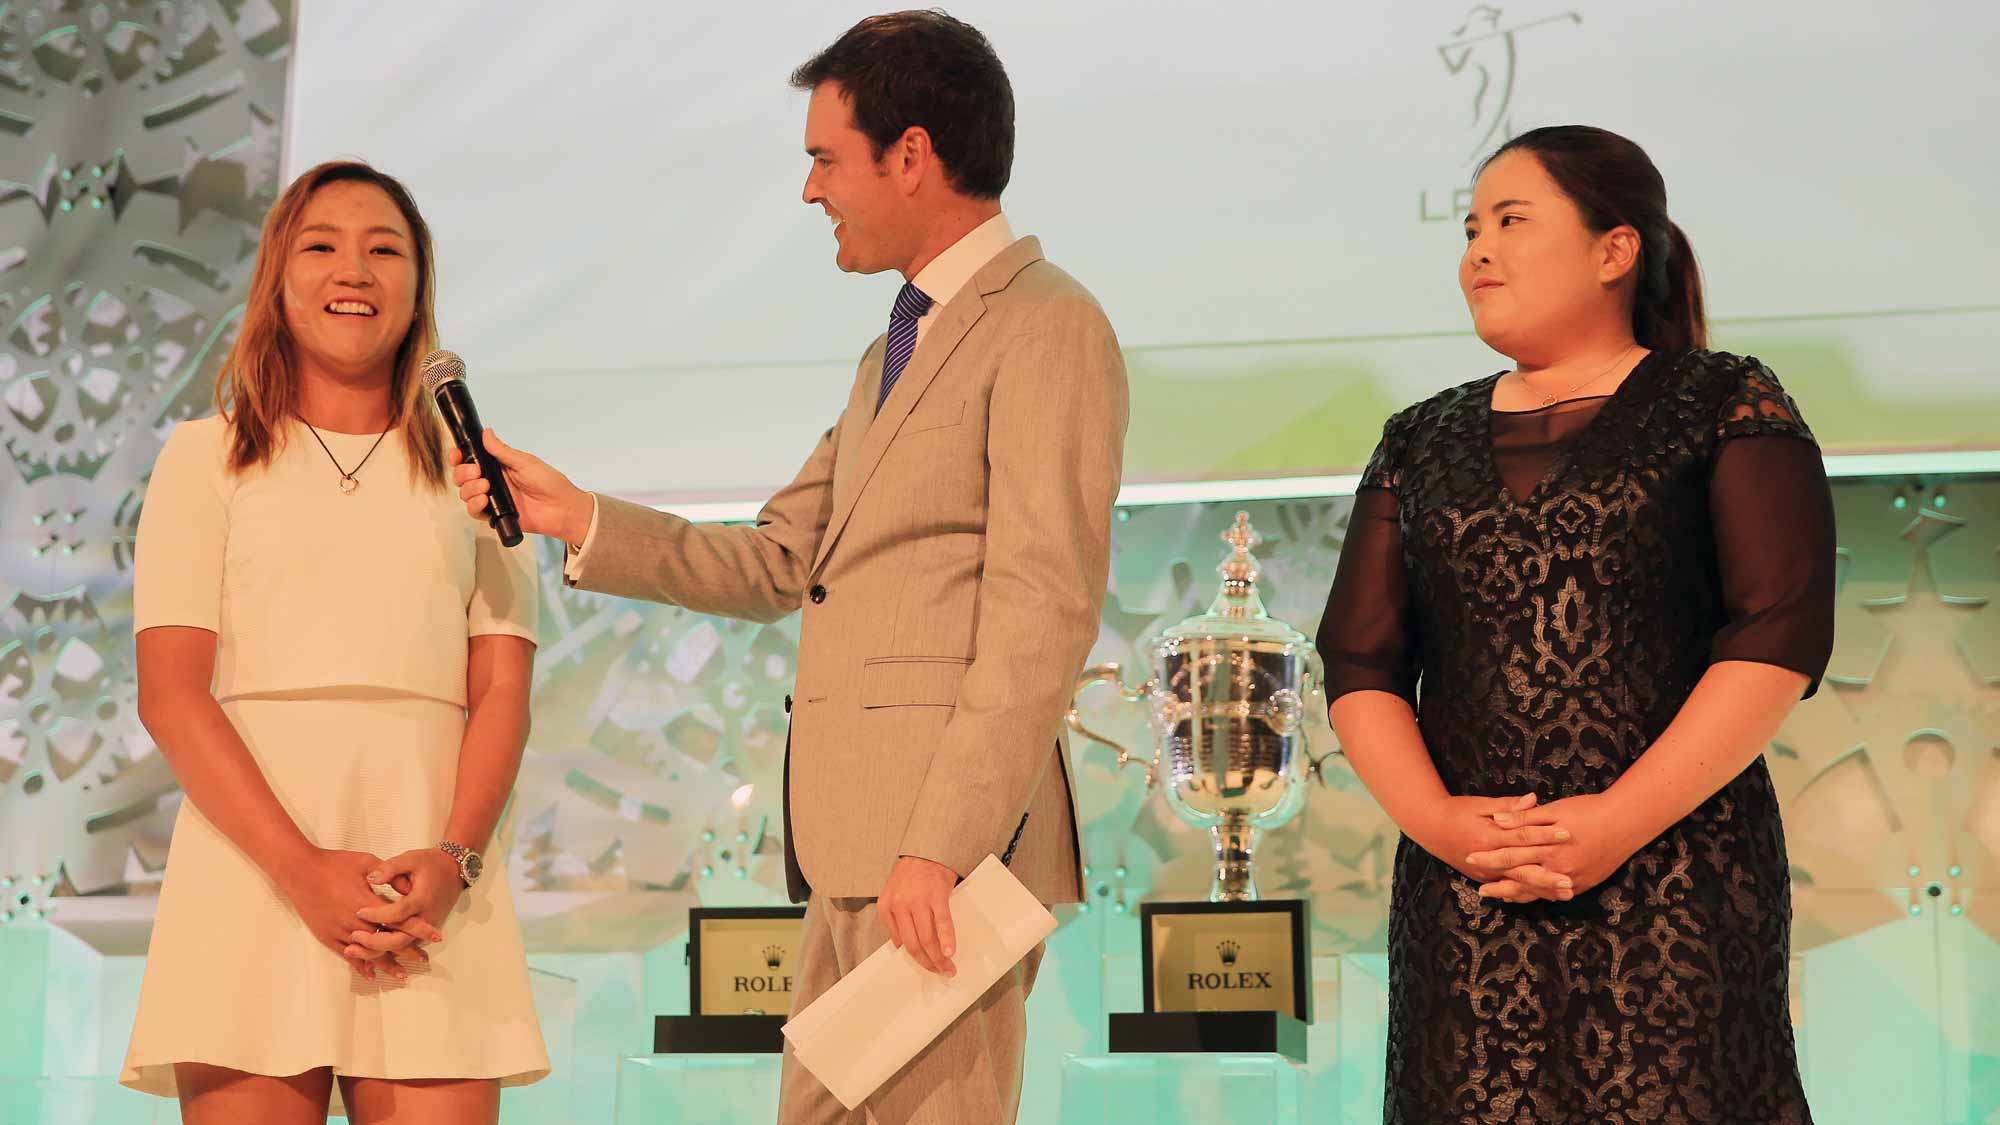 Tom Abbott of Golf Channel chats on stage with Lydia Ko of New Zealand (L) and Inbee Park of South Korea during the LPGA Rolex Players Awards at the Ritz-Carlton, Naples